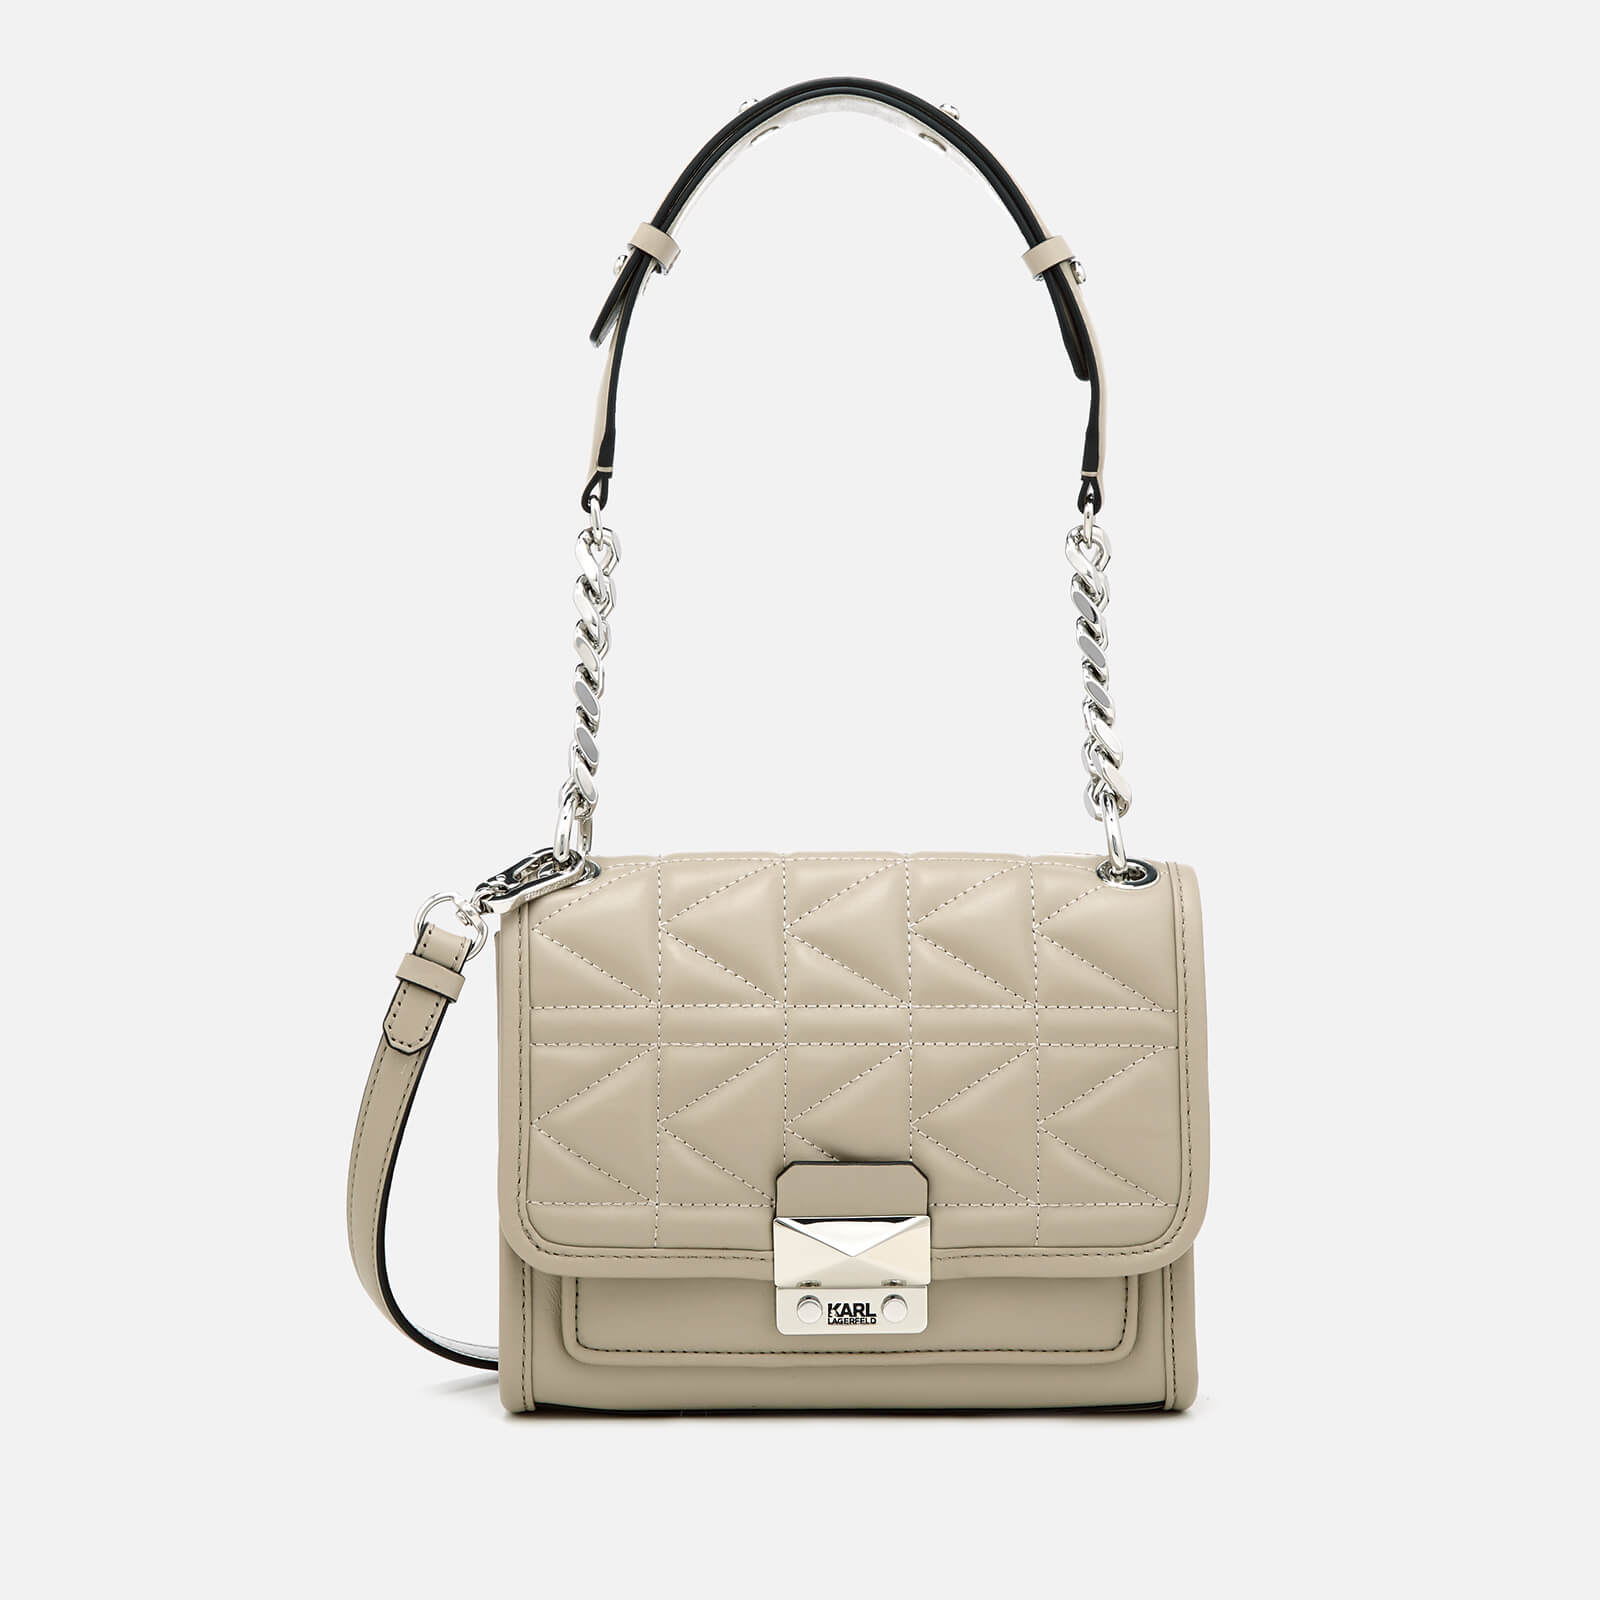 6f3df864ace2 Karl Lagerfeld Women s K Kuilted Mini Handbag - Earth - Free UK Delivery  over £50